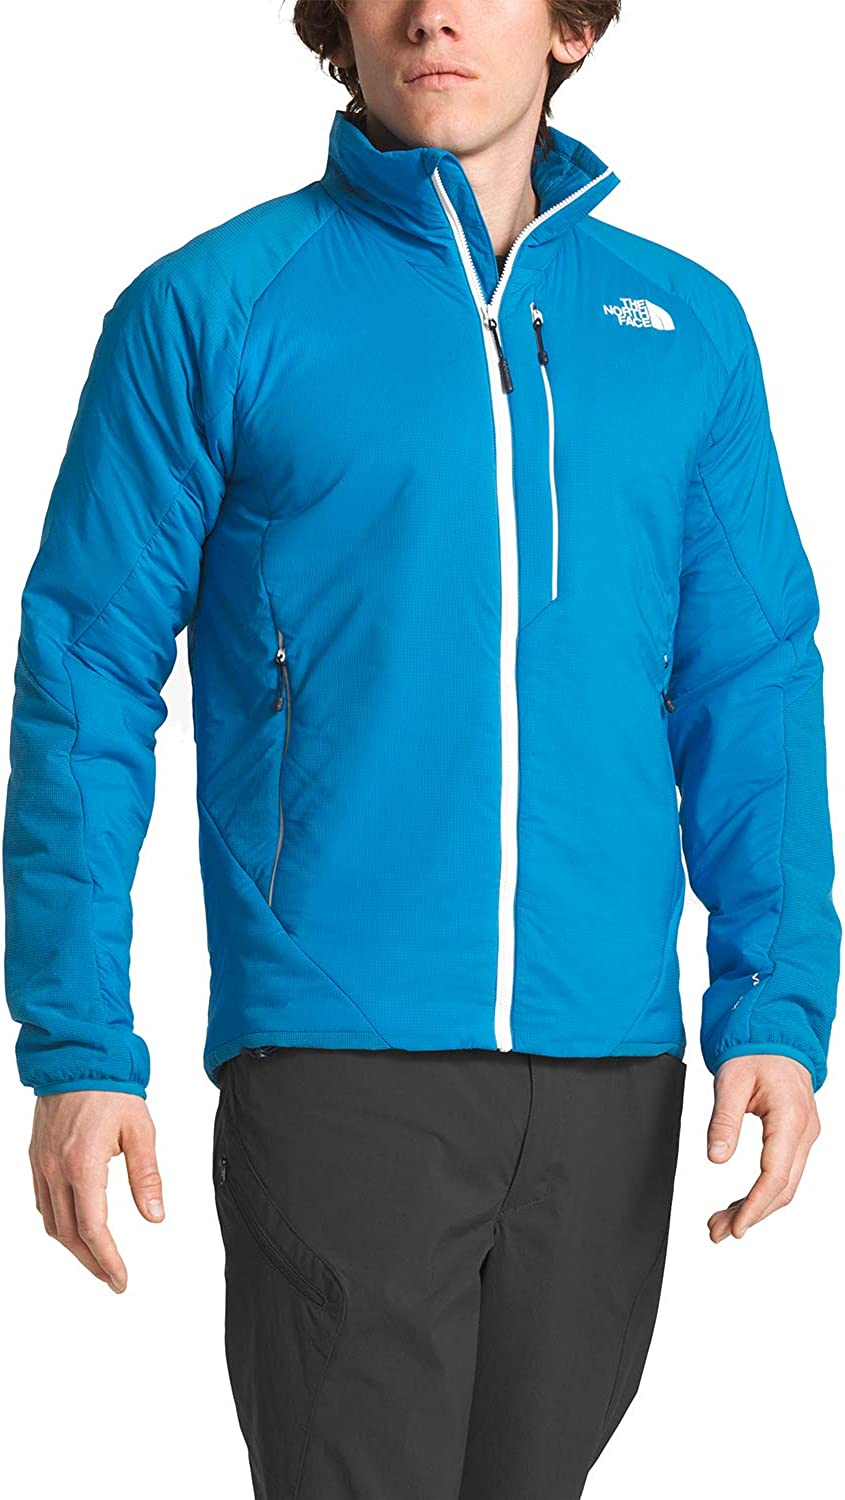 The North Face Ventrix Max 47% OFF - Men's Hoodie OFFer